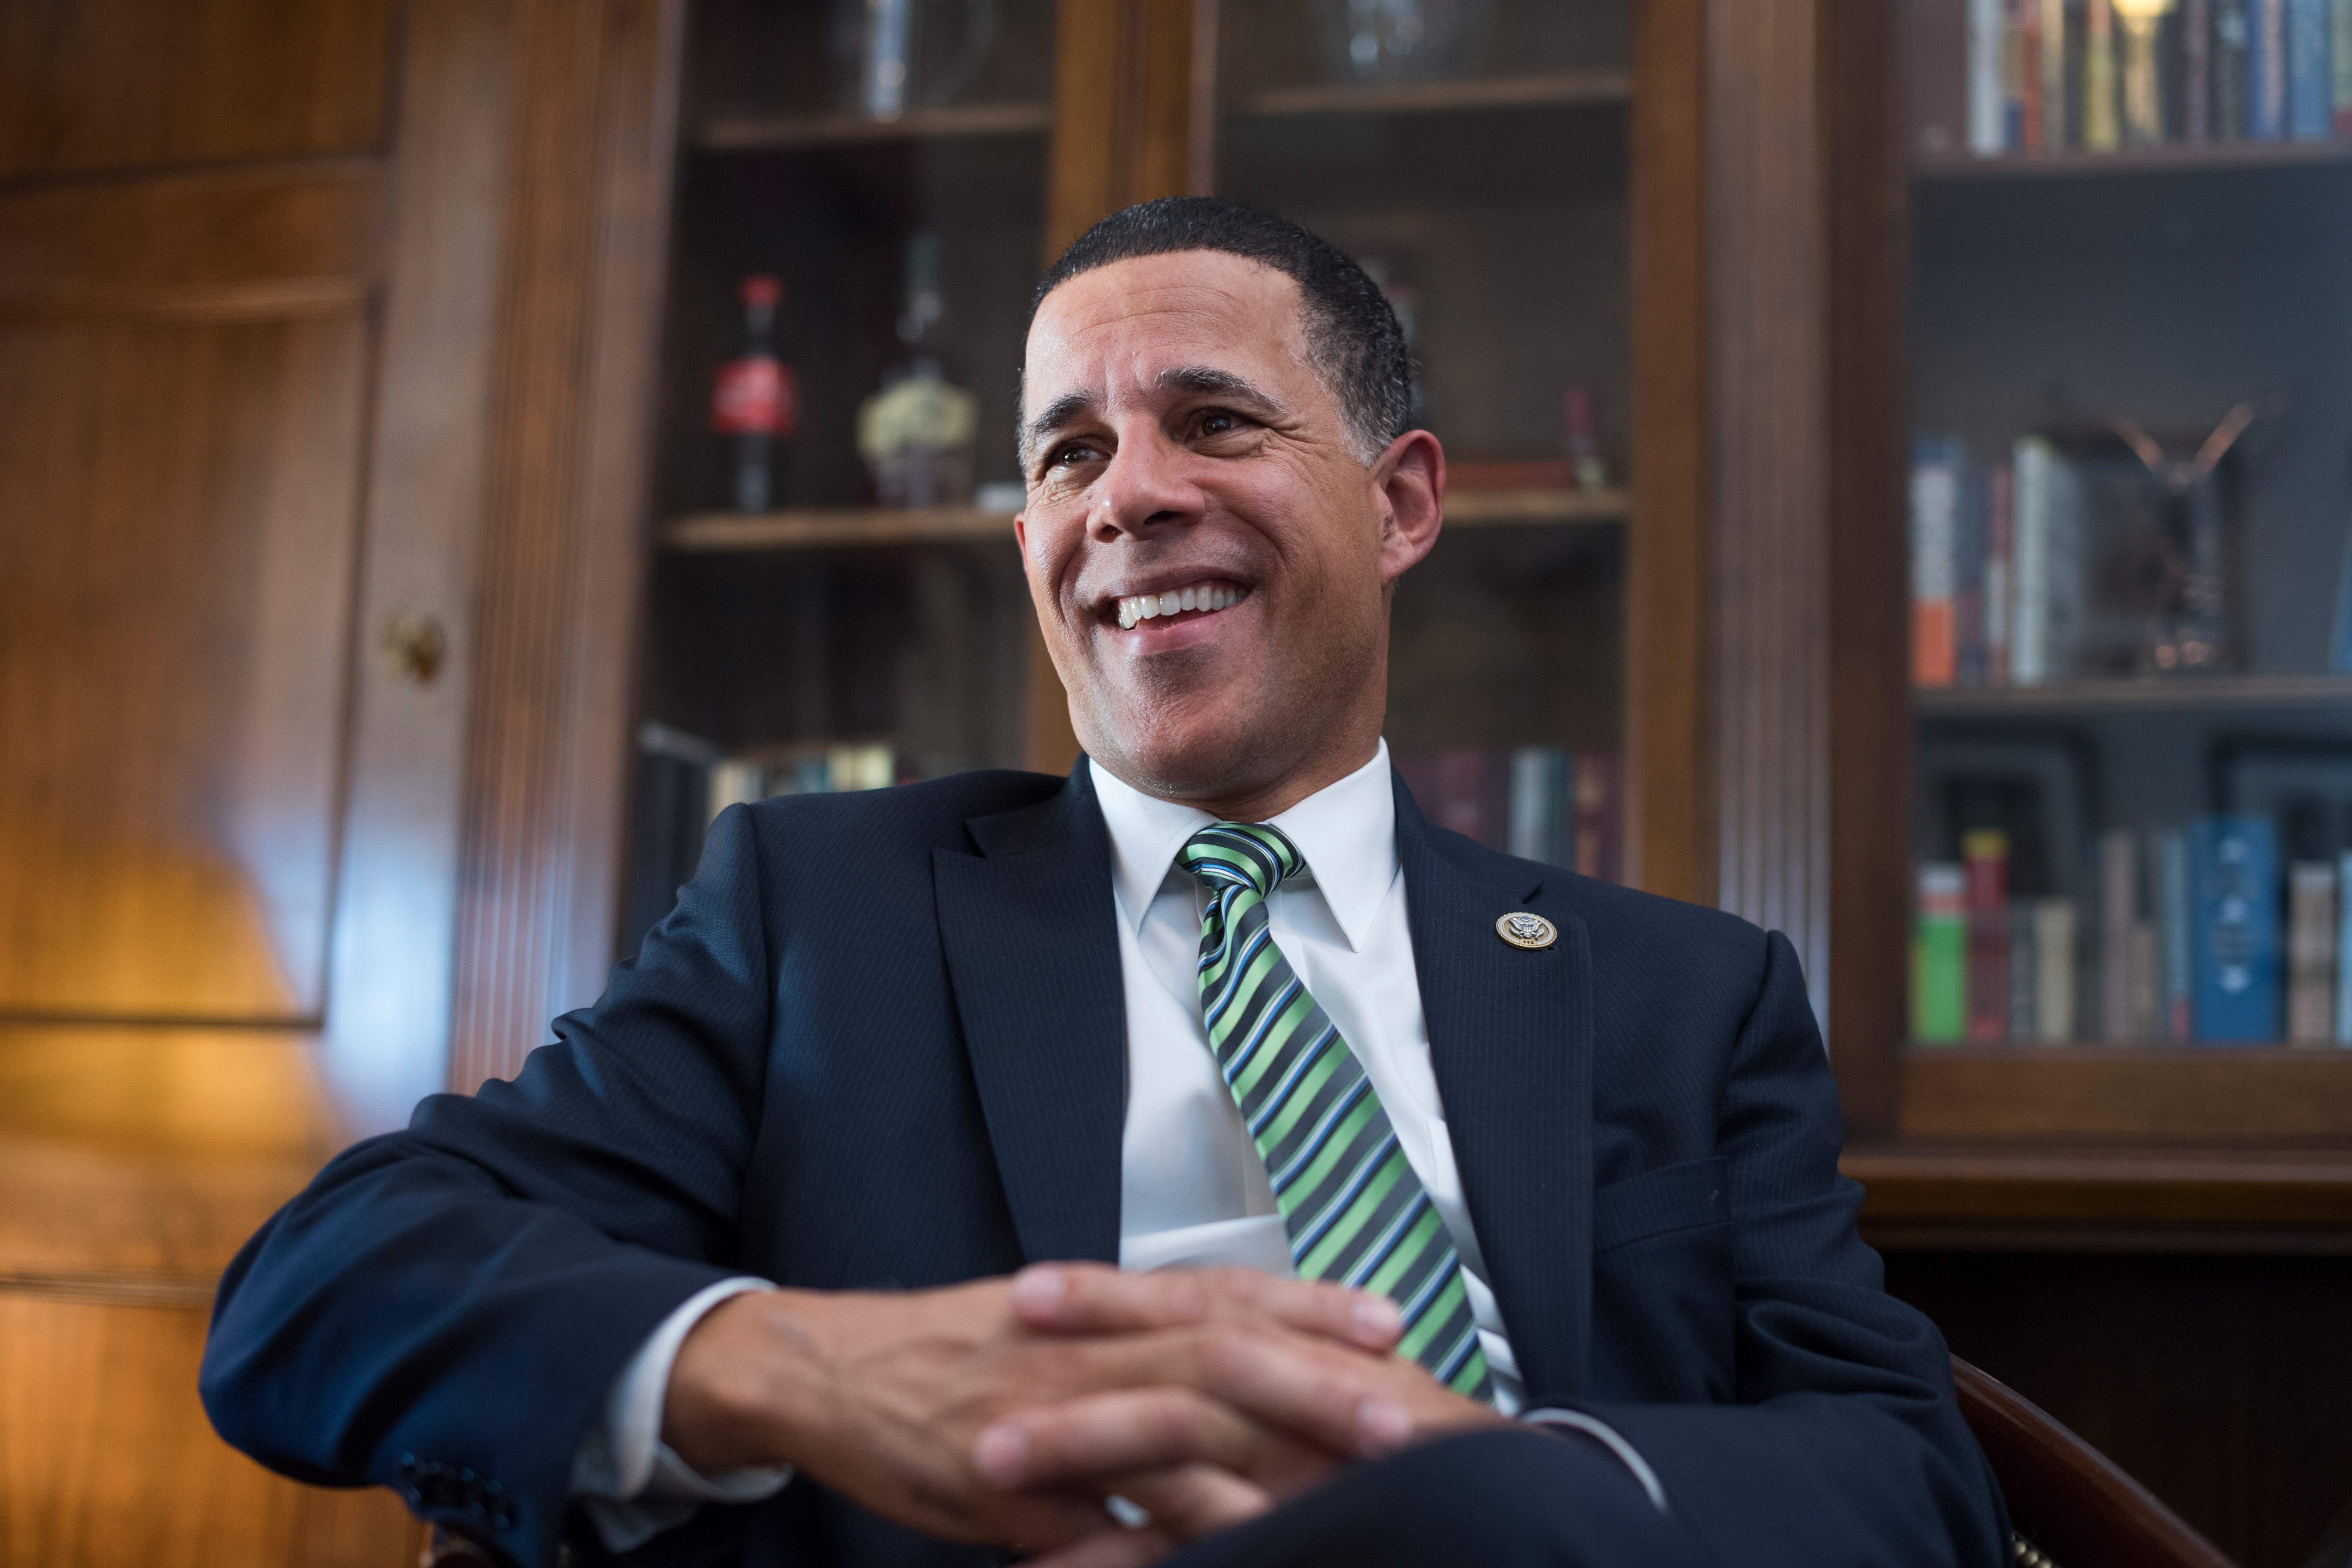 UNITED STATES - OCTOBER 03: Rep. Anthony Brown, D-Md., is interviewed in his Longworth Building office on October 3, 2017. (Photo By Tom Williams/CQ Roll Call)